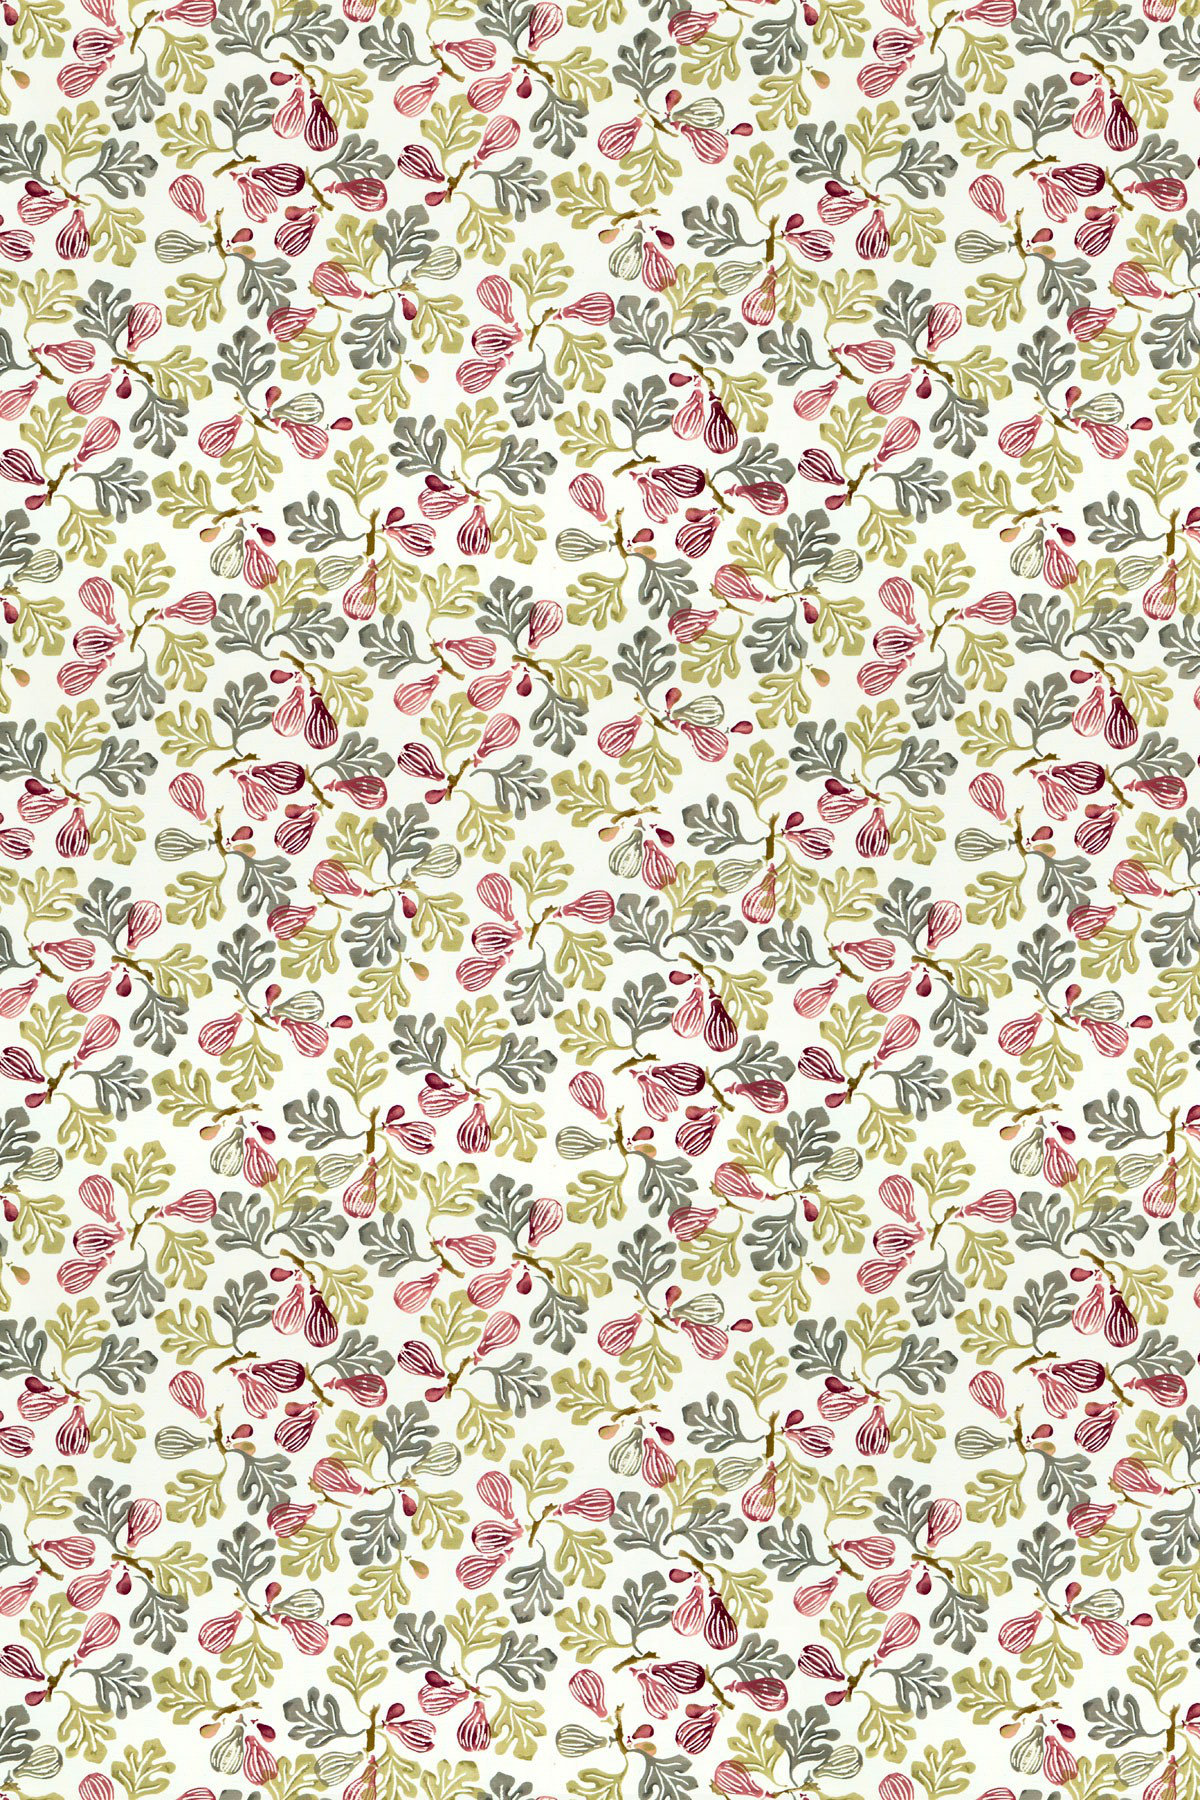 Image of Emma Bridgewater Fabric Figs Rose Pink/Moss, 223427